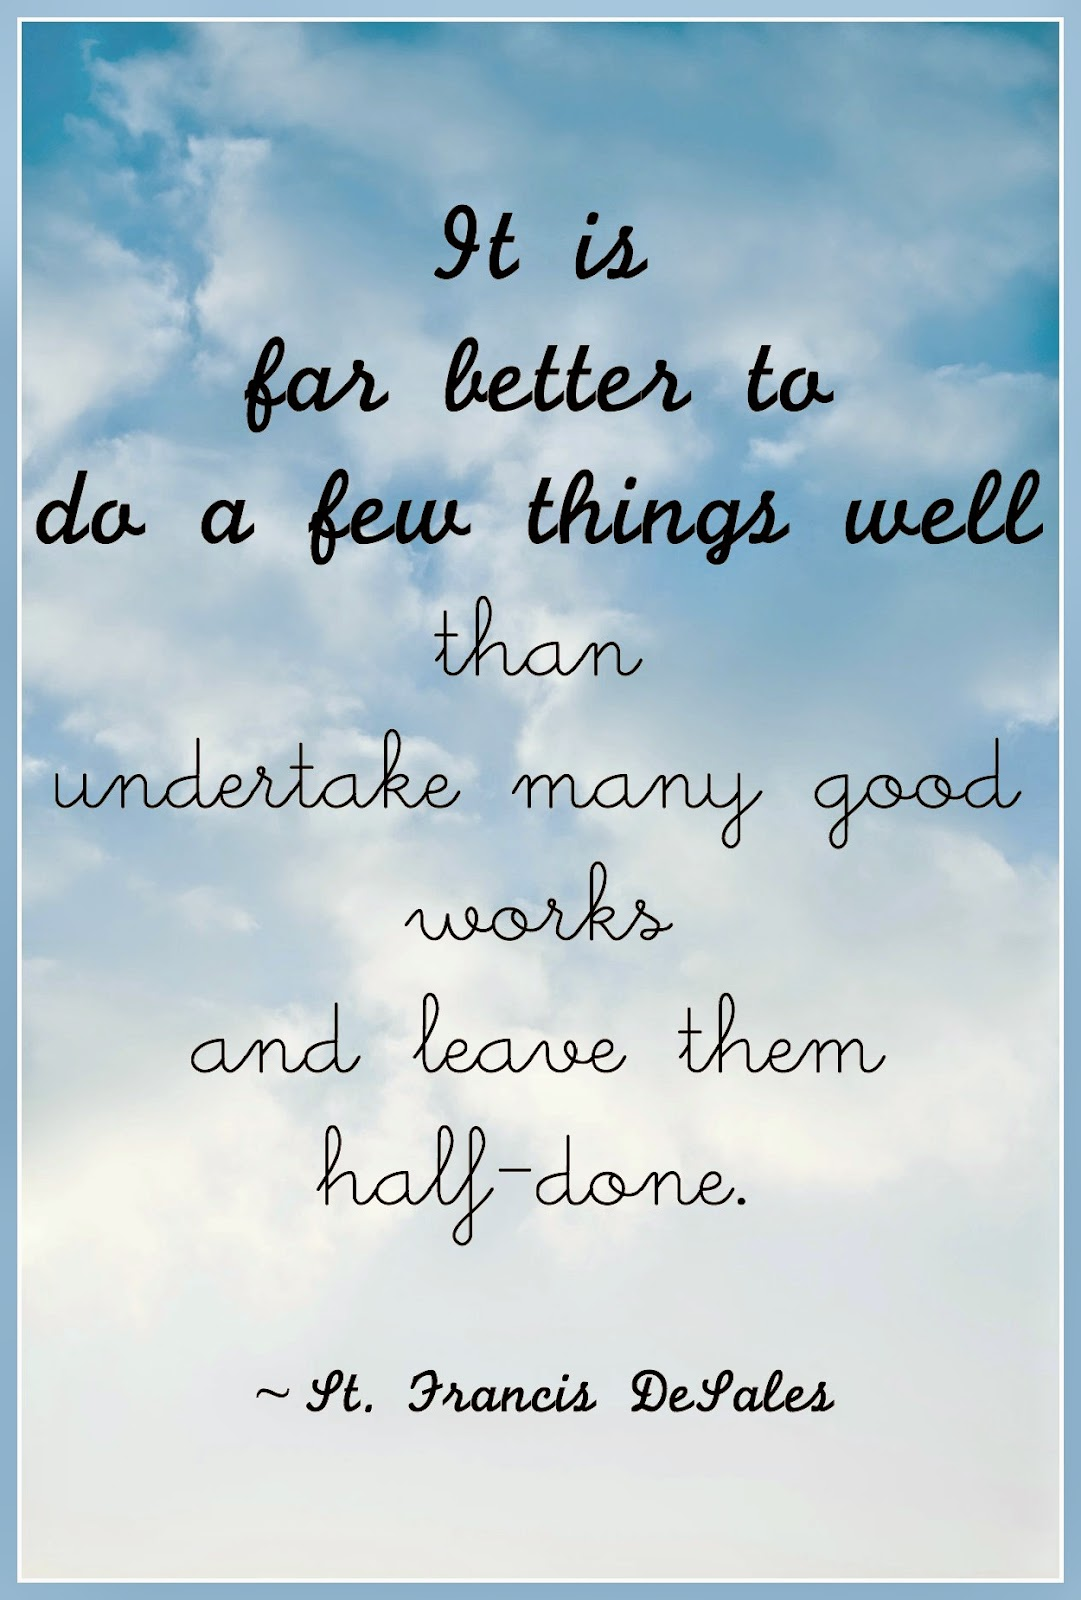 """It is far better to do a few things well than undertake many good works and leave them half-done.""  ~ St. Francis de Sales"